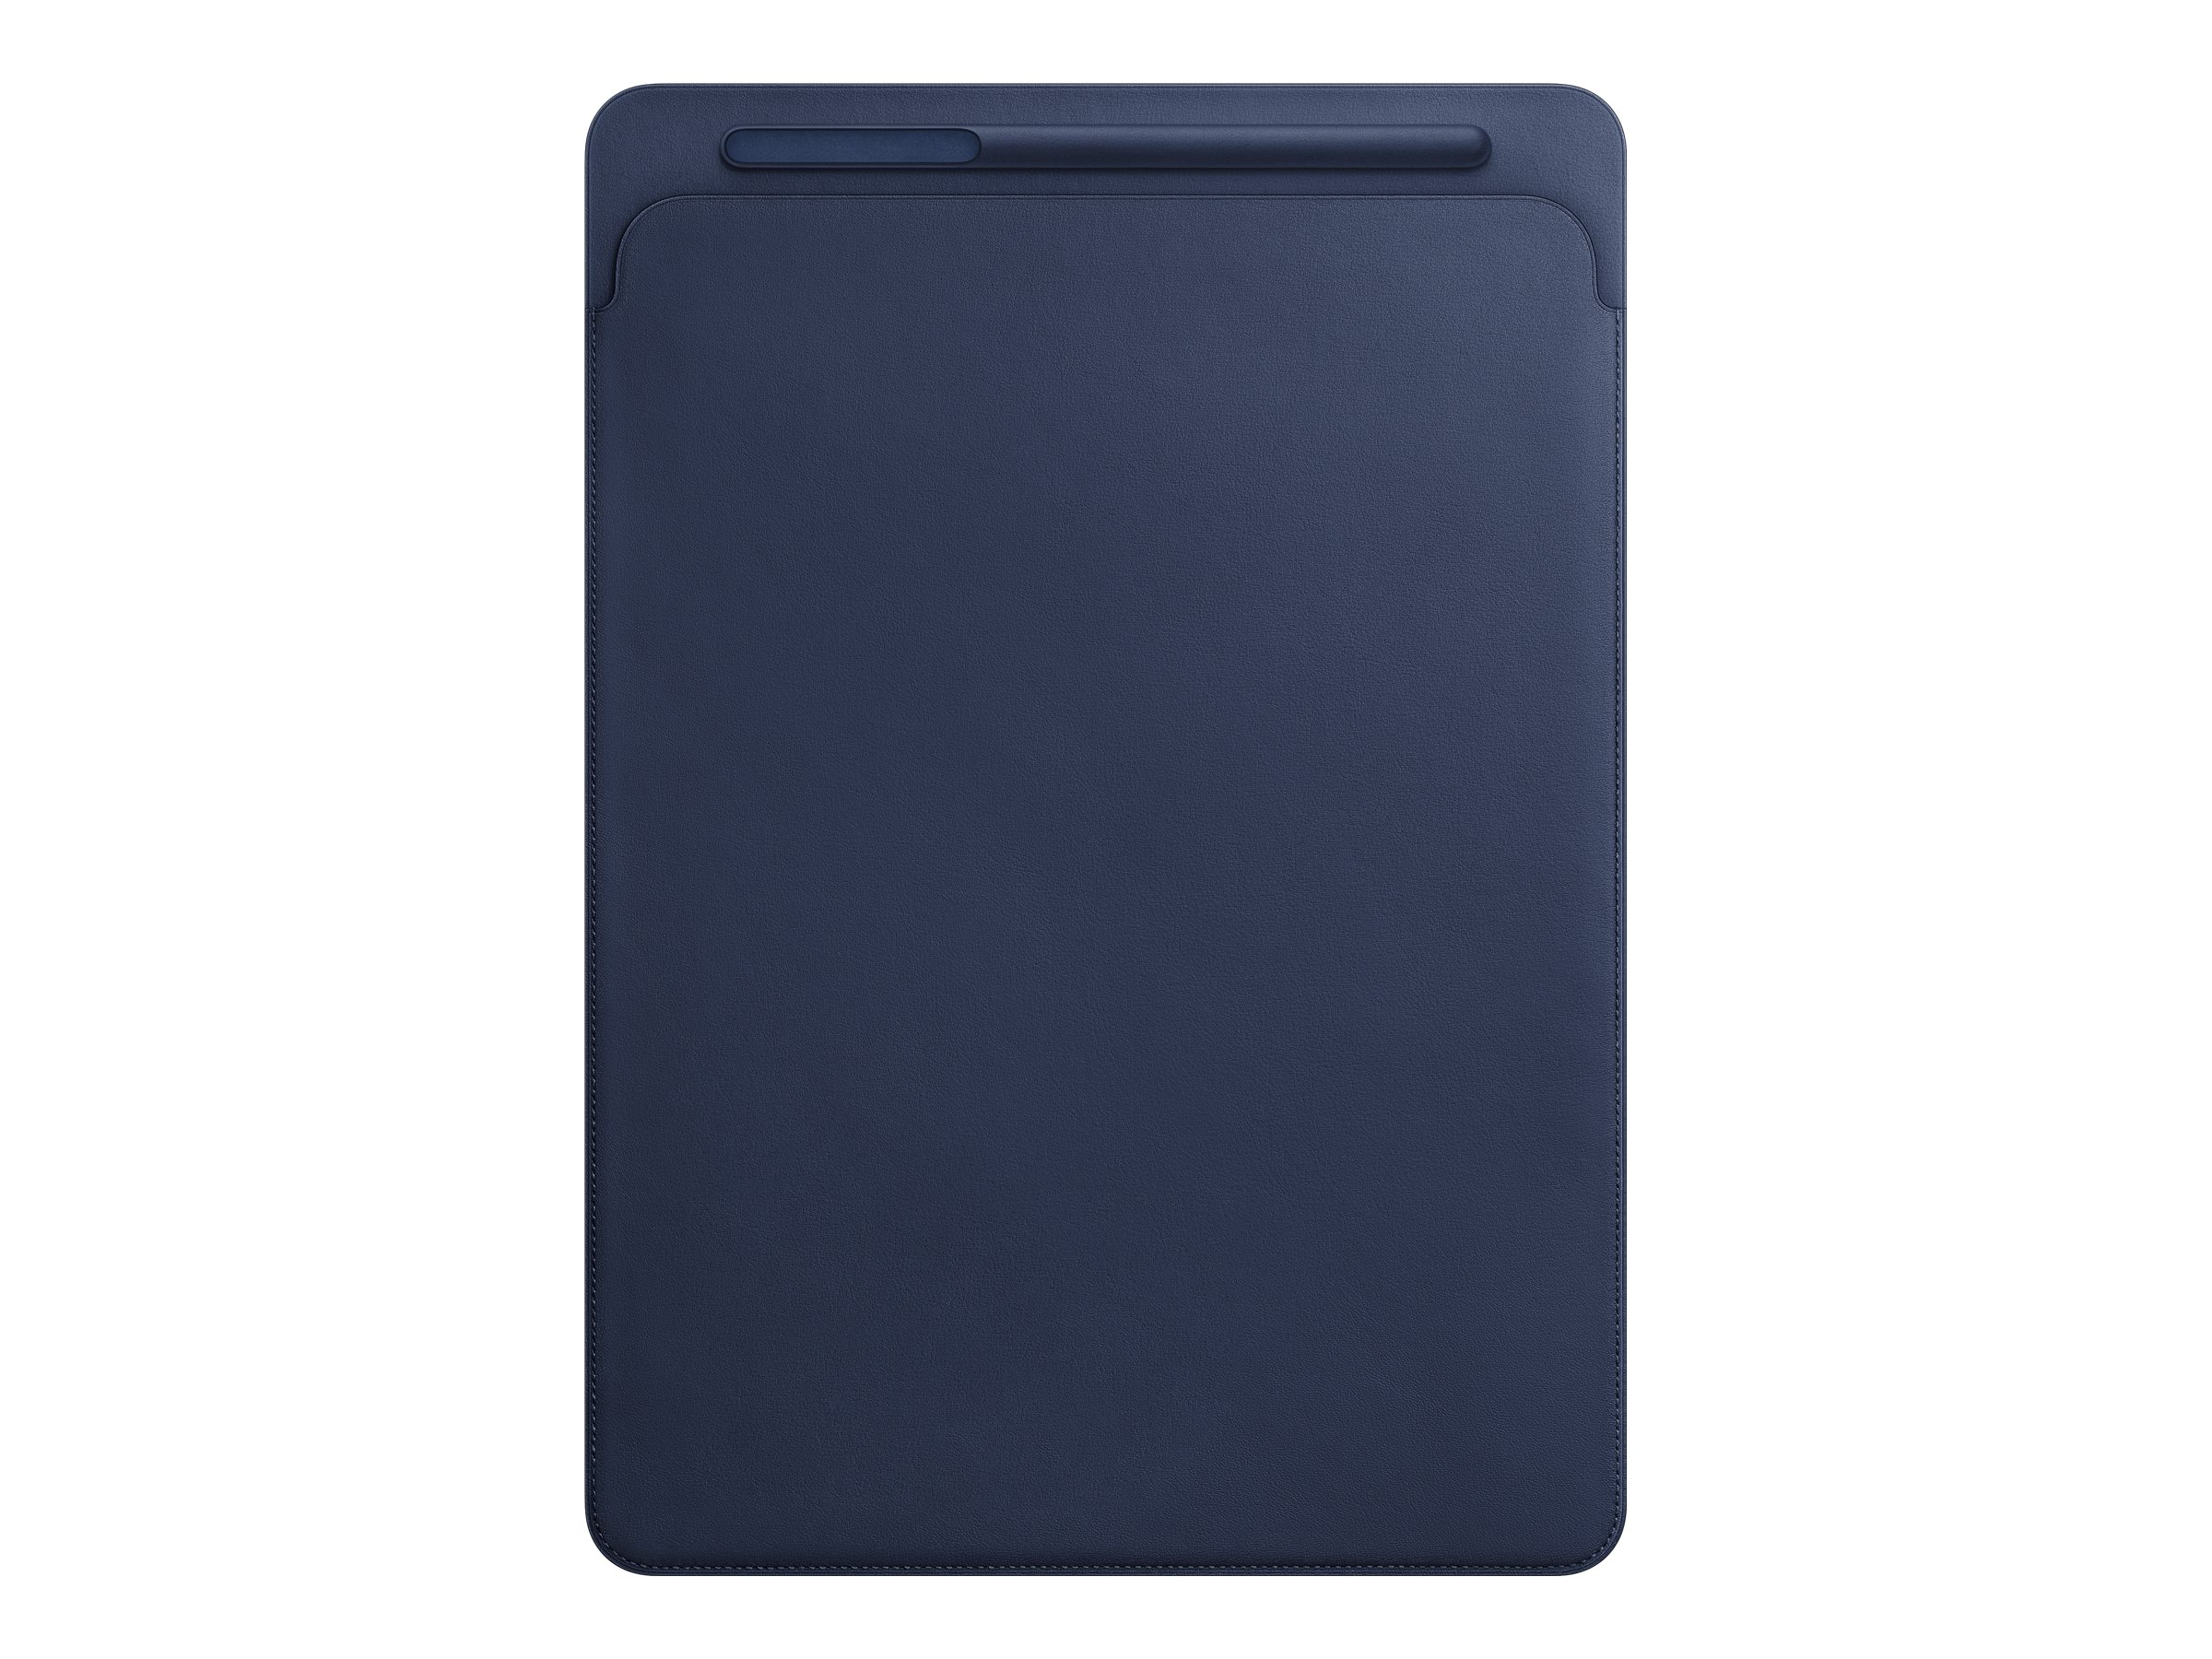 Apple Leather Sleeve for 12.9 iPad Pro, Midnight Blue, MQ0T2ZM/A